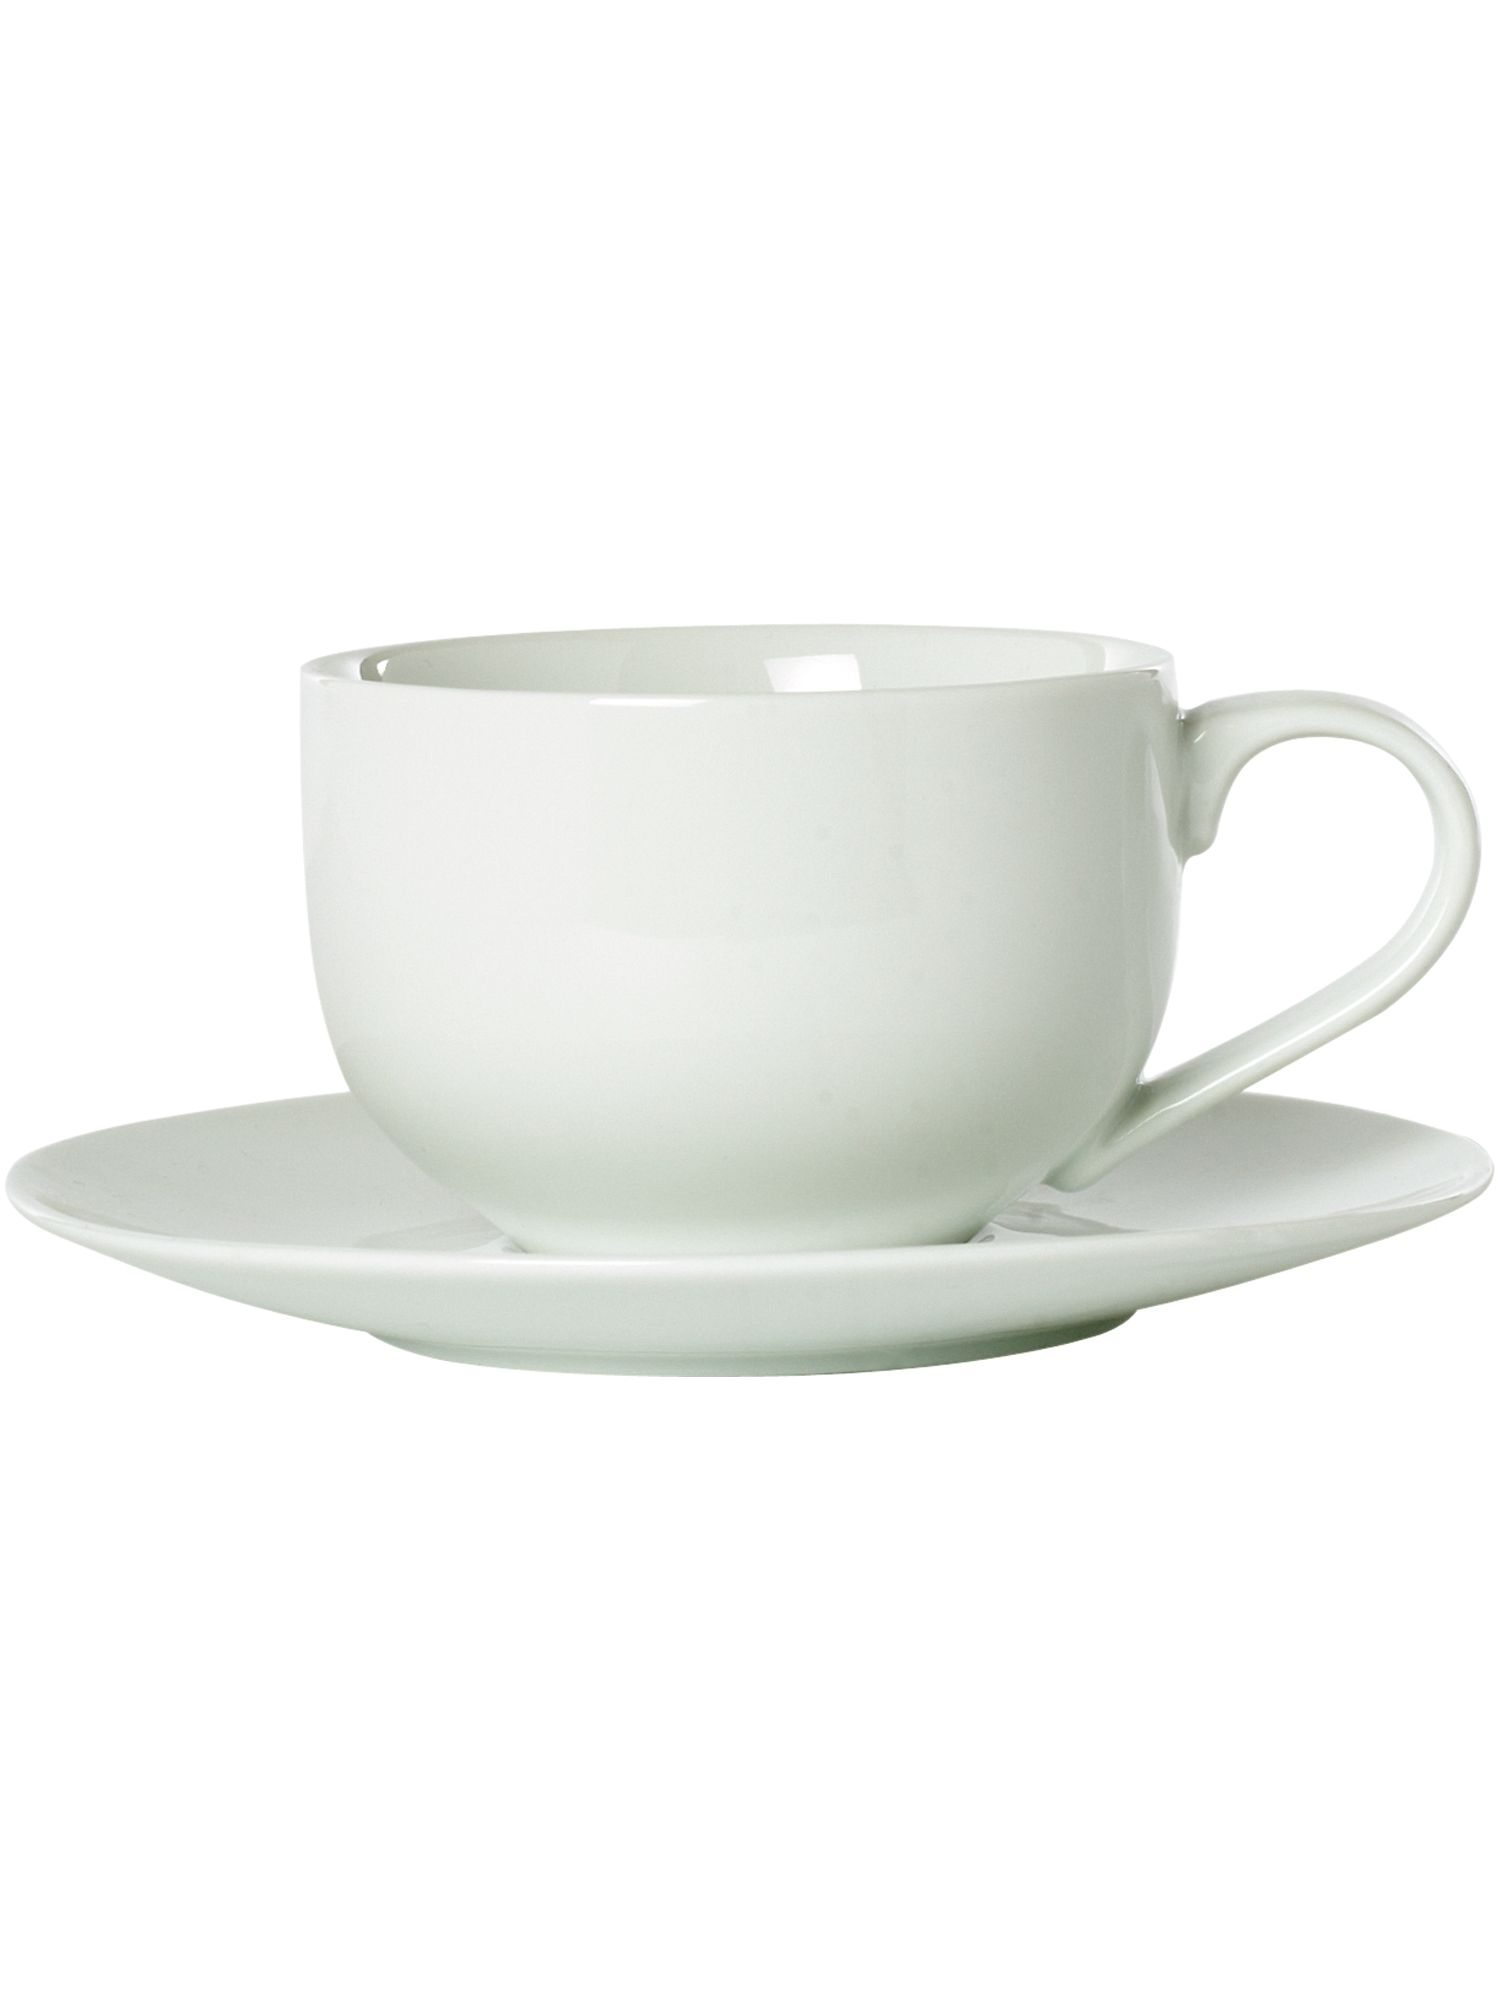 Beau tea cup and saucer